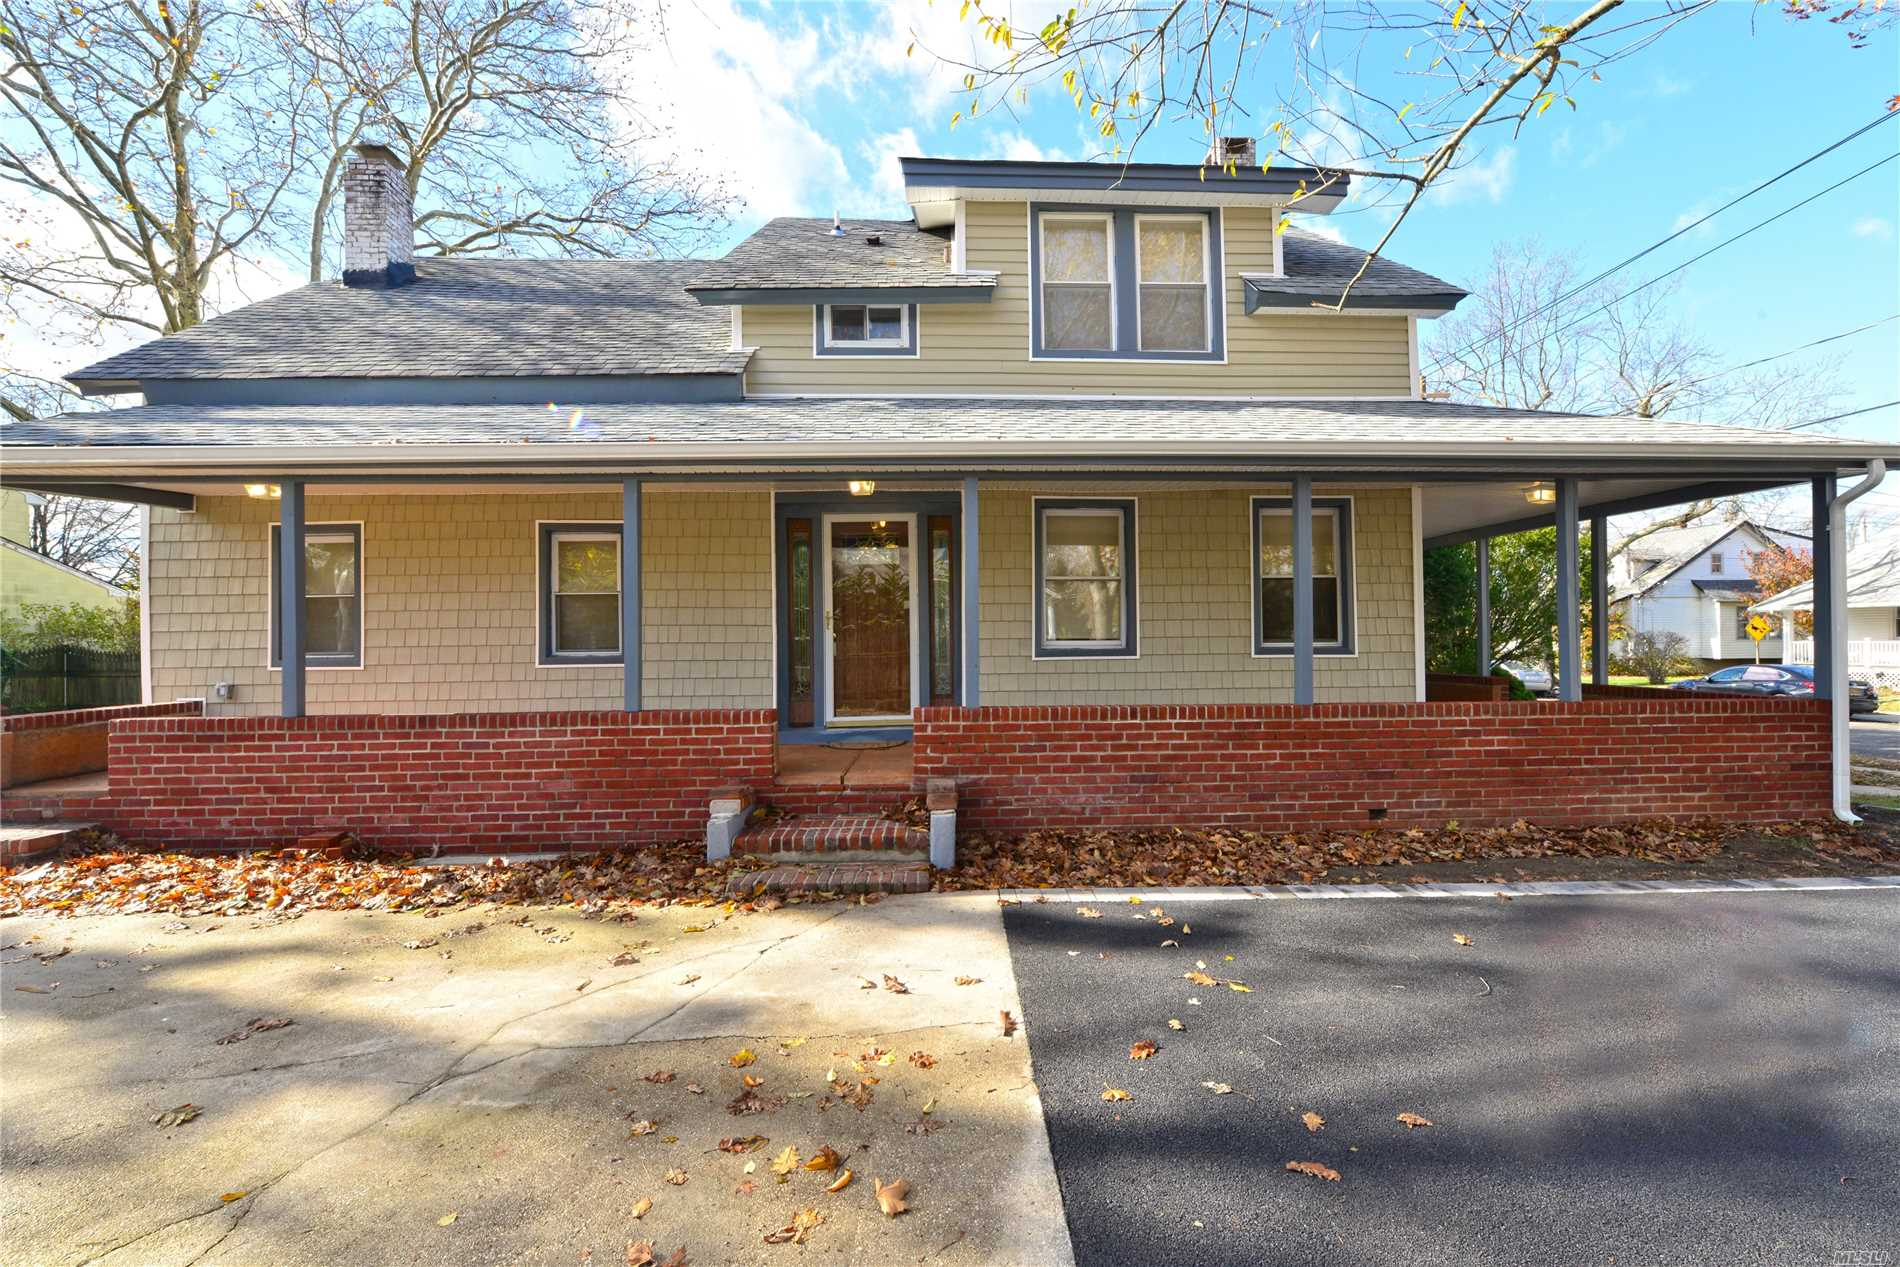 Beautifully Renovated 4 Br Colonial! 2 New Full Baths, Fuill Finished Bsmt As A Family Rm, Laundry/Utitlity Rm. Huge Backyard & Wrap Around Porch. Foyer, Lr, Formal Dr/Den, New White Eik Kitchen W/ Granite Counter Tops & New Stainless Steel Appliances. Gorgeous Wood Floors.